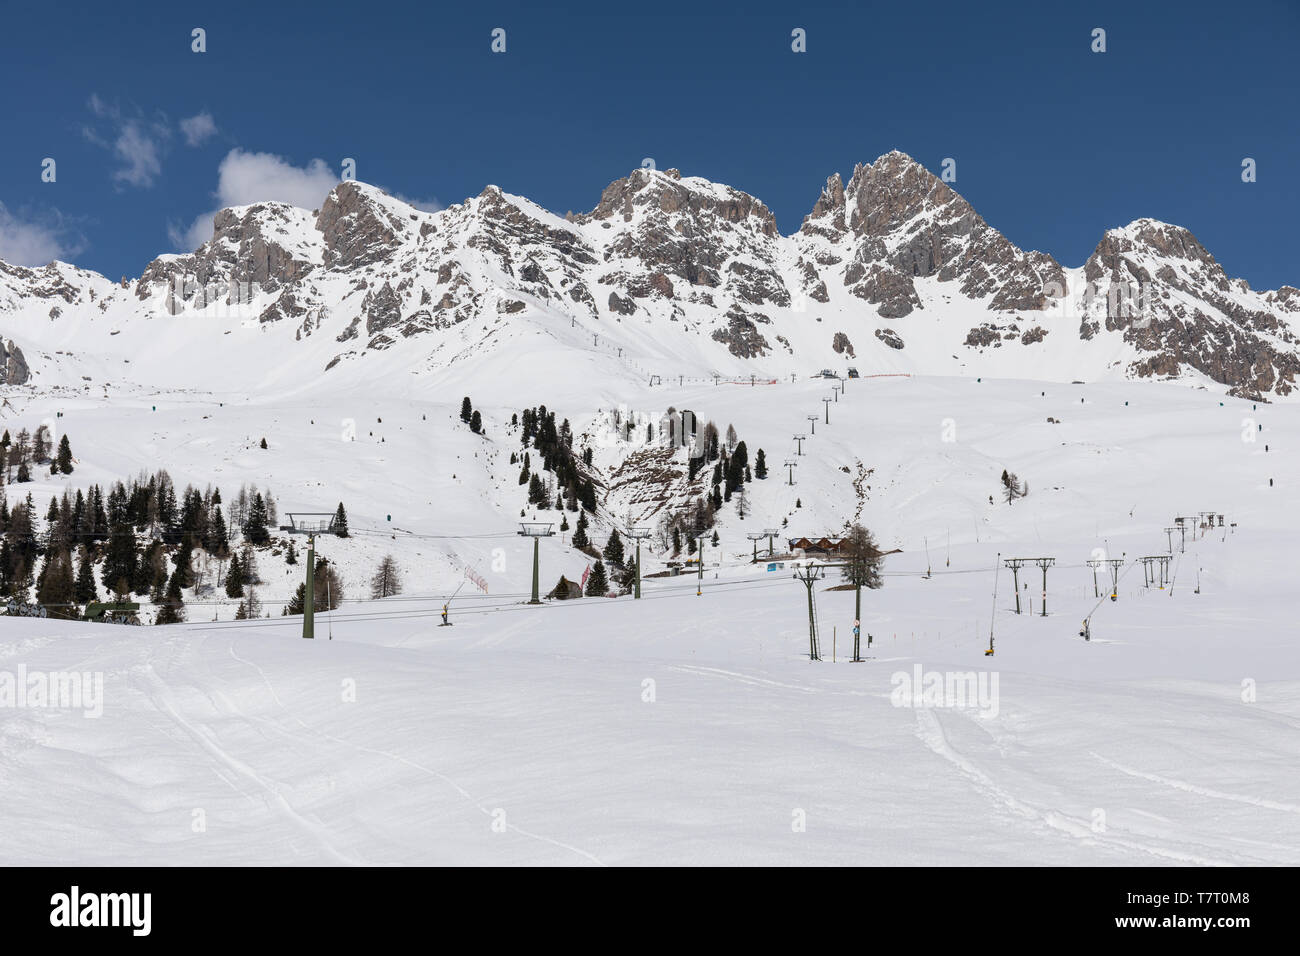 San Pellegrino ski resort in the Dolomites, Italy Stock Photo